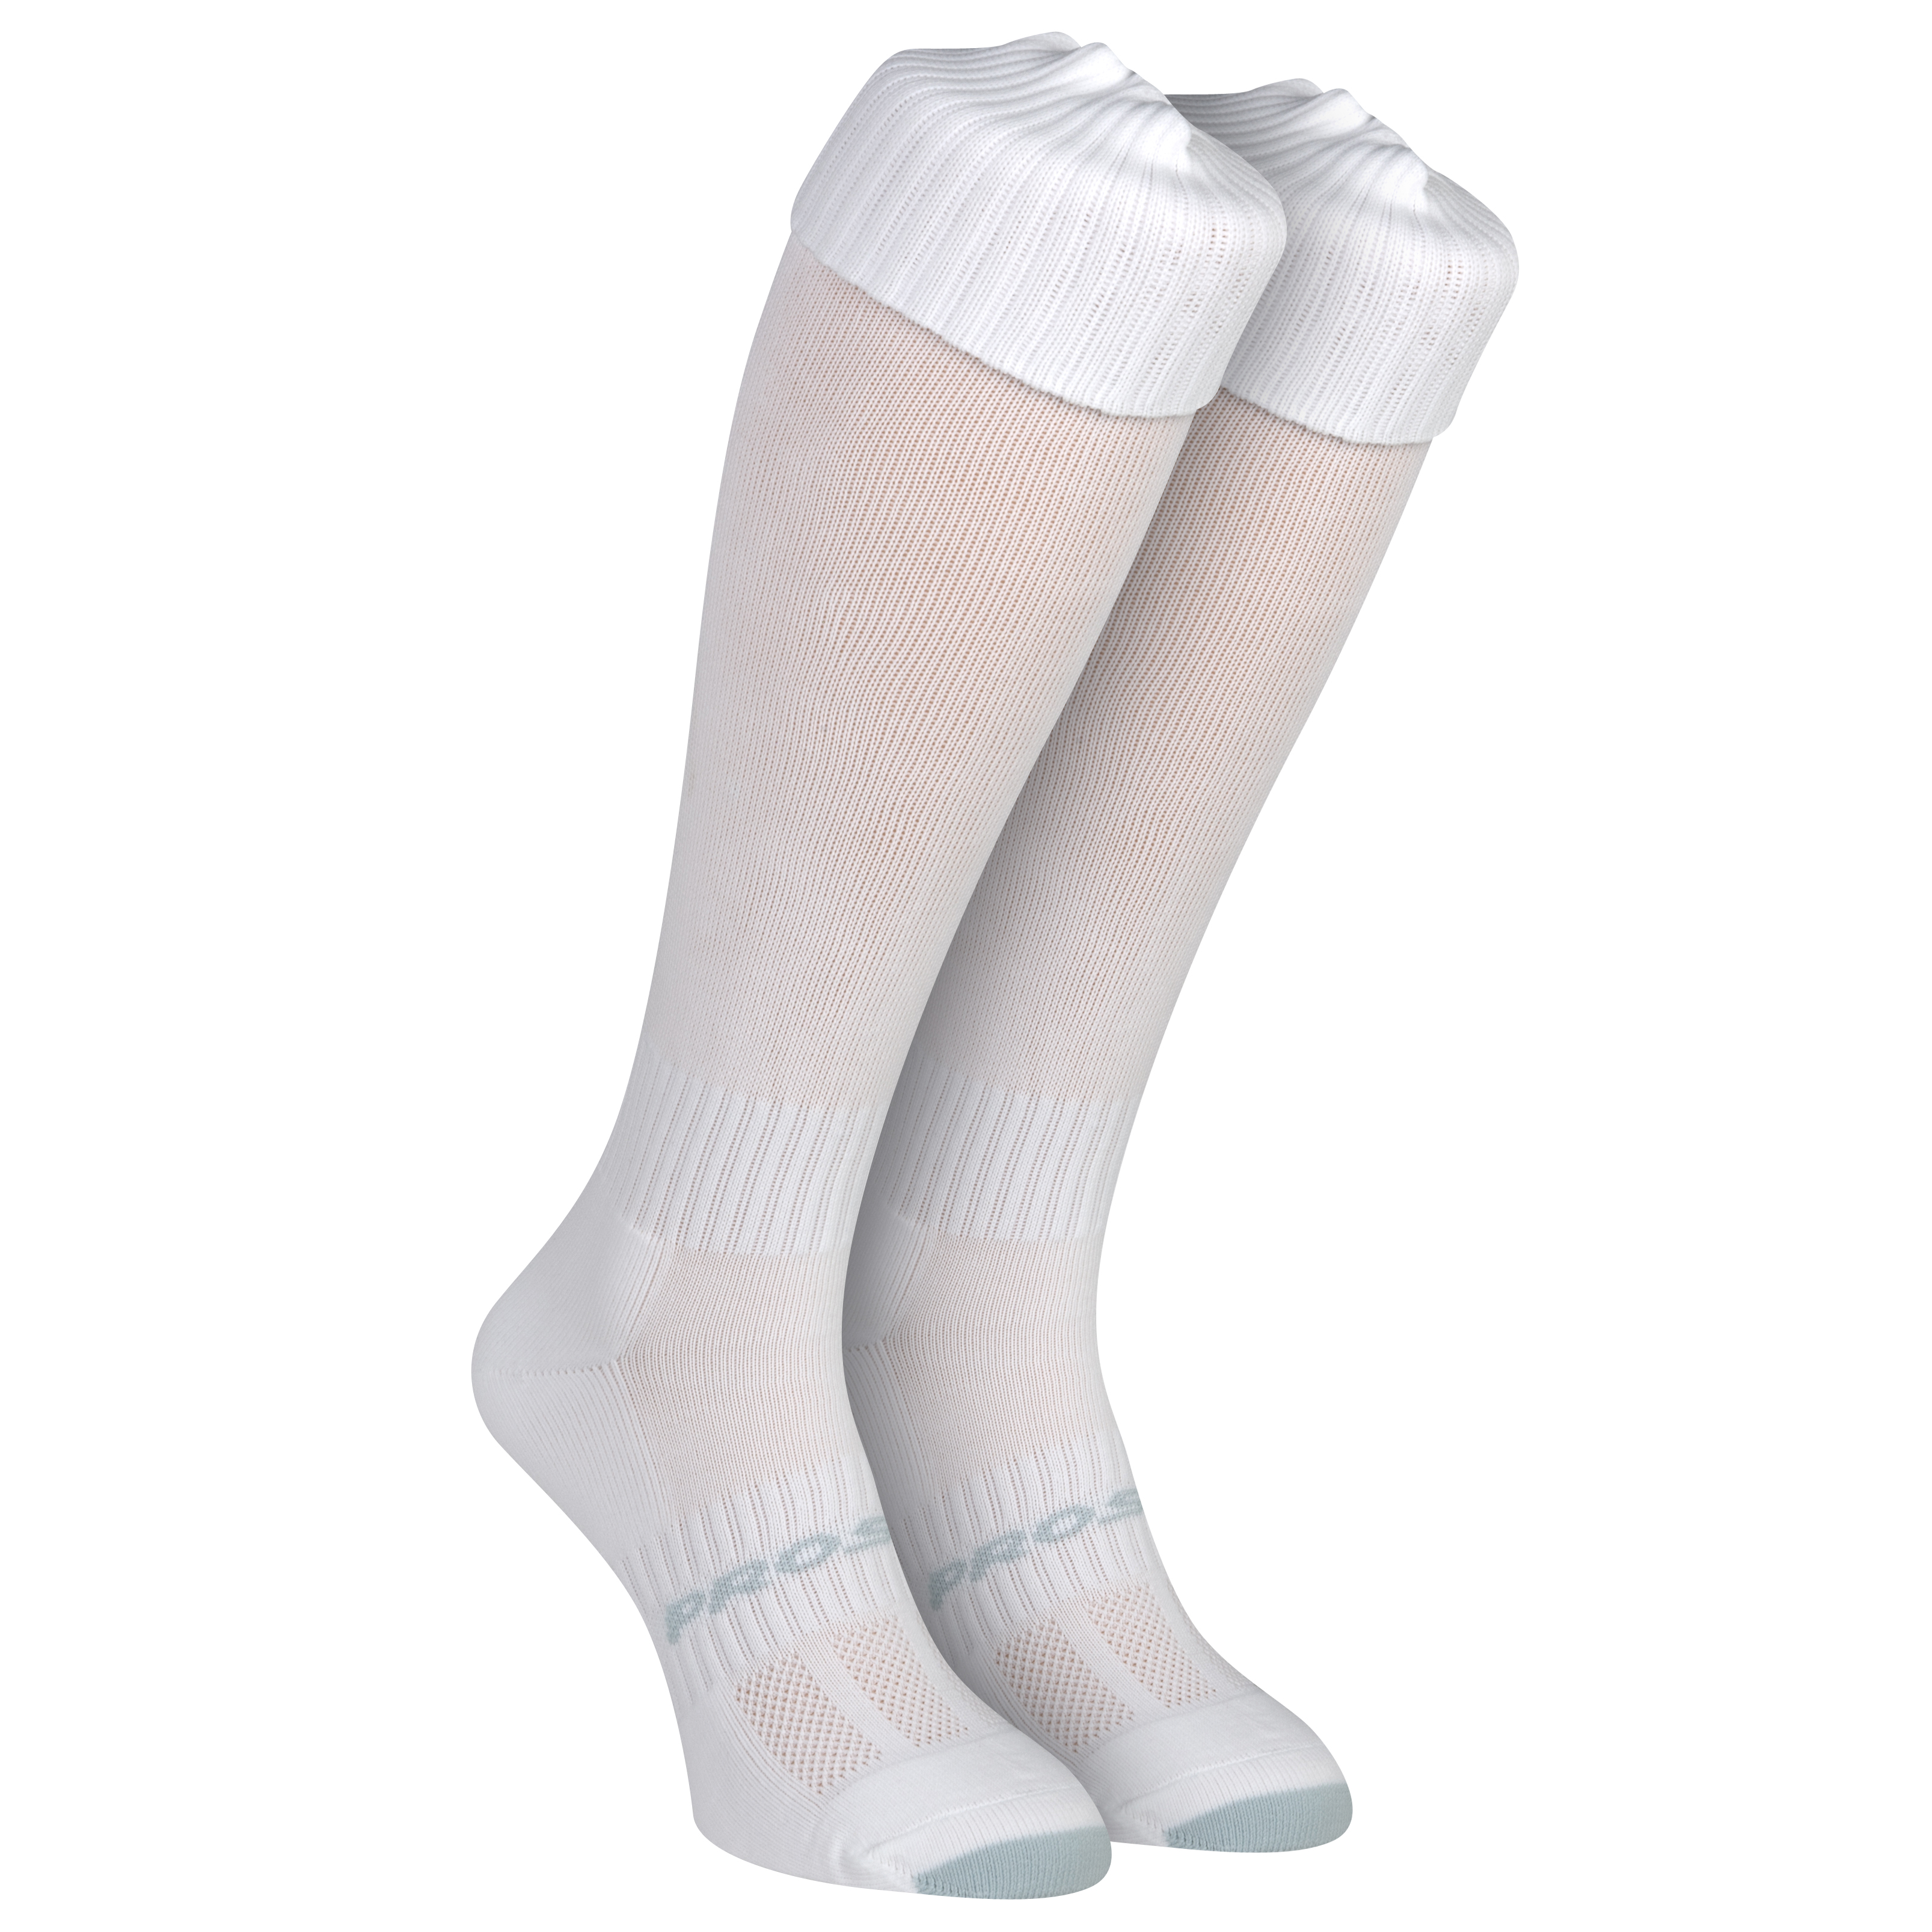 Mitre Mercury Football Socks - White - Size 7-11